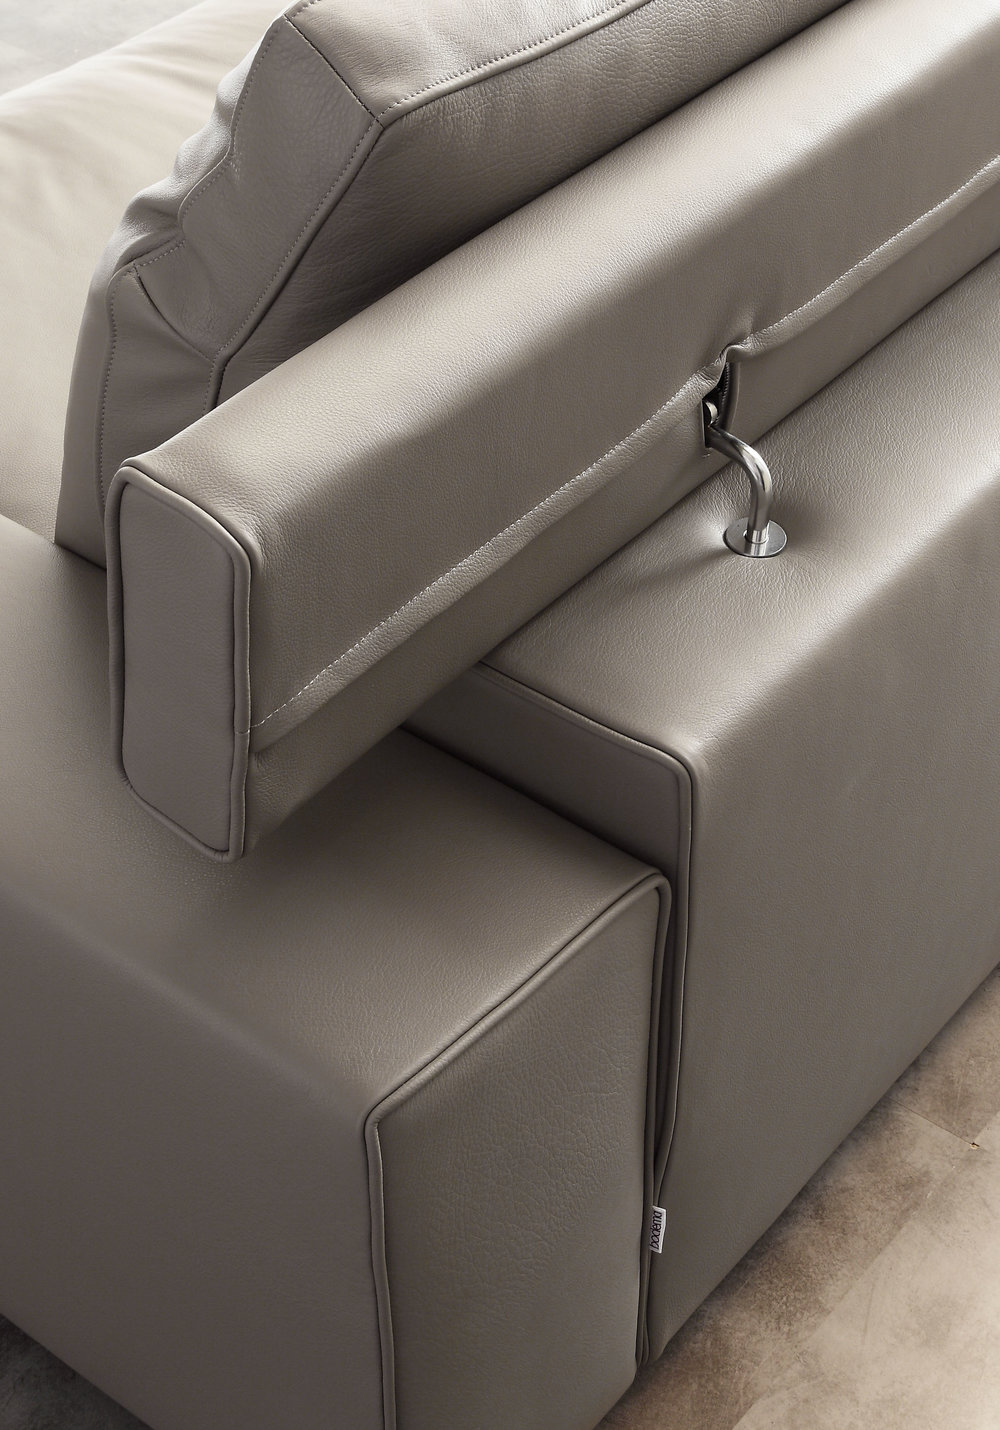 SB 73 sofa bed detail